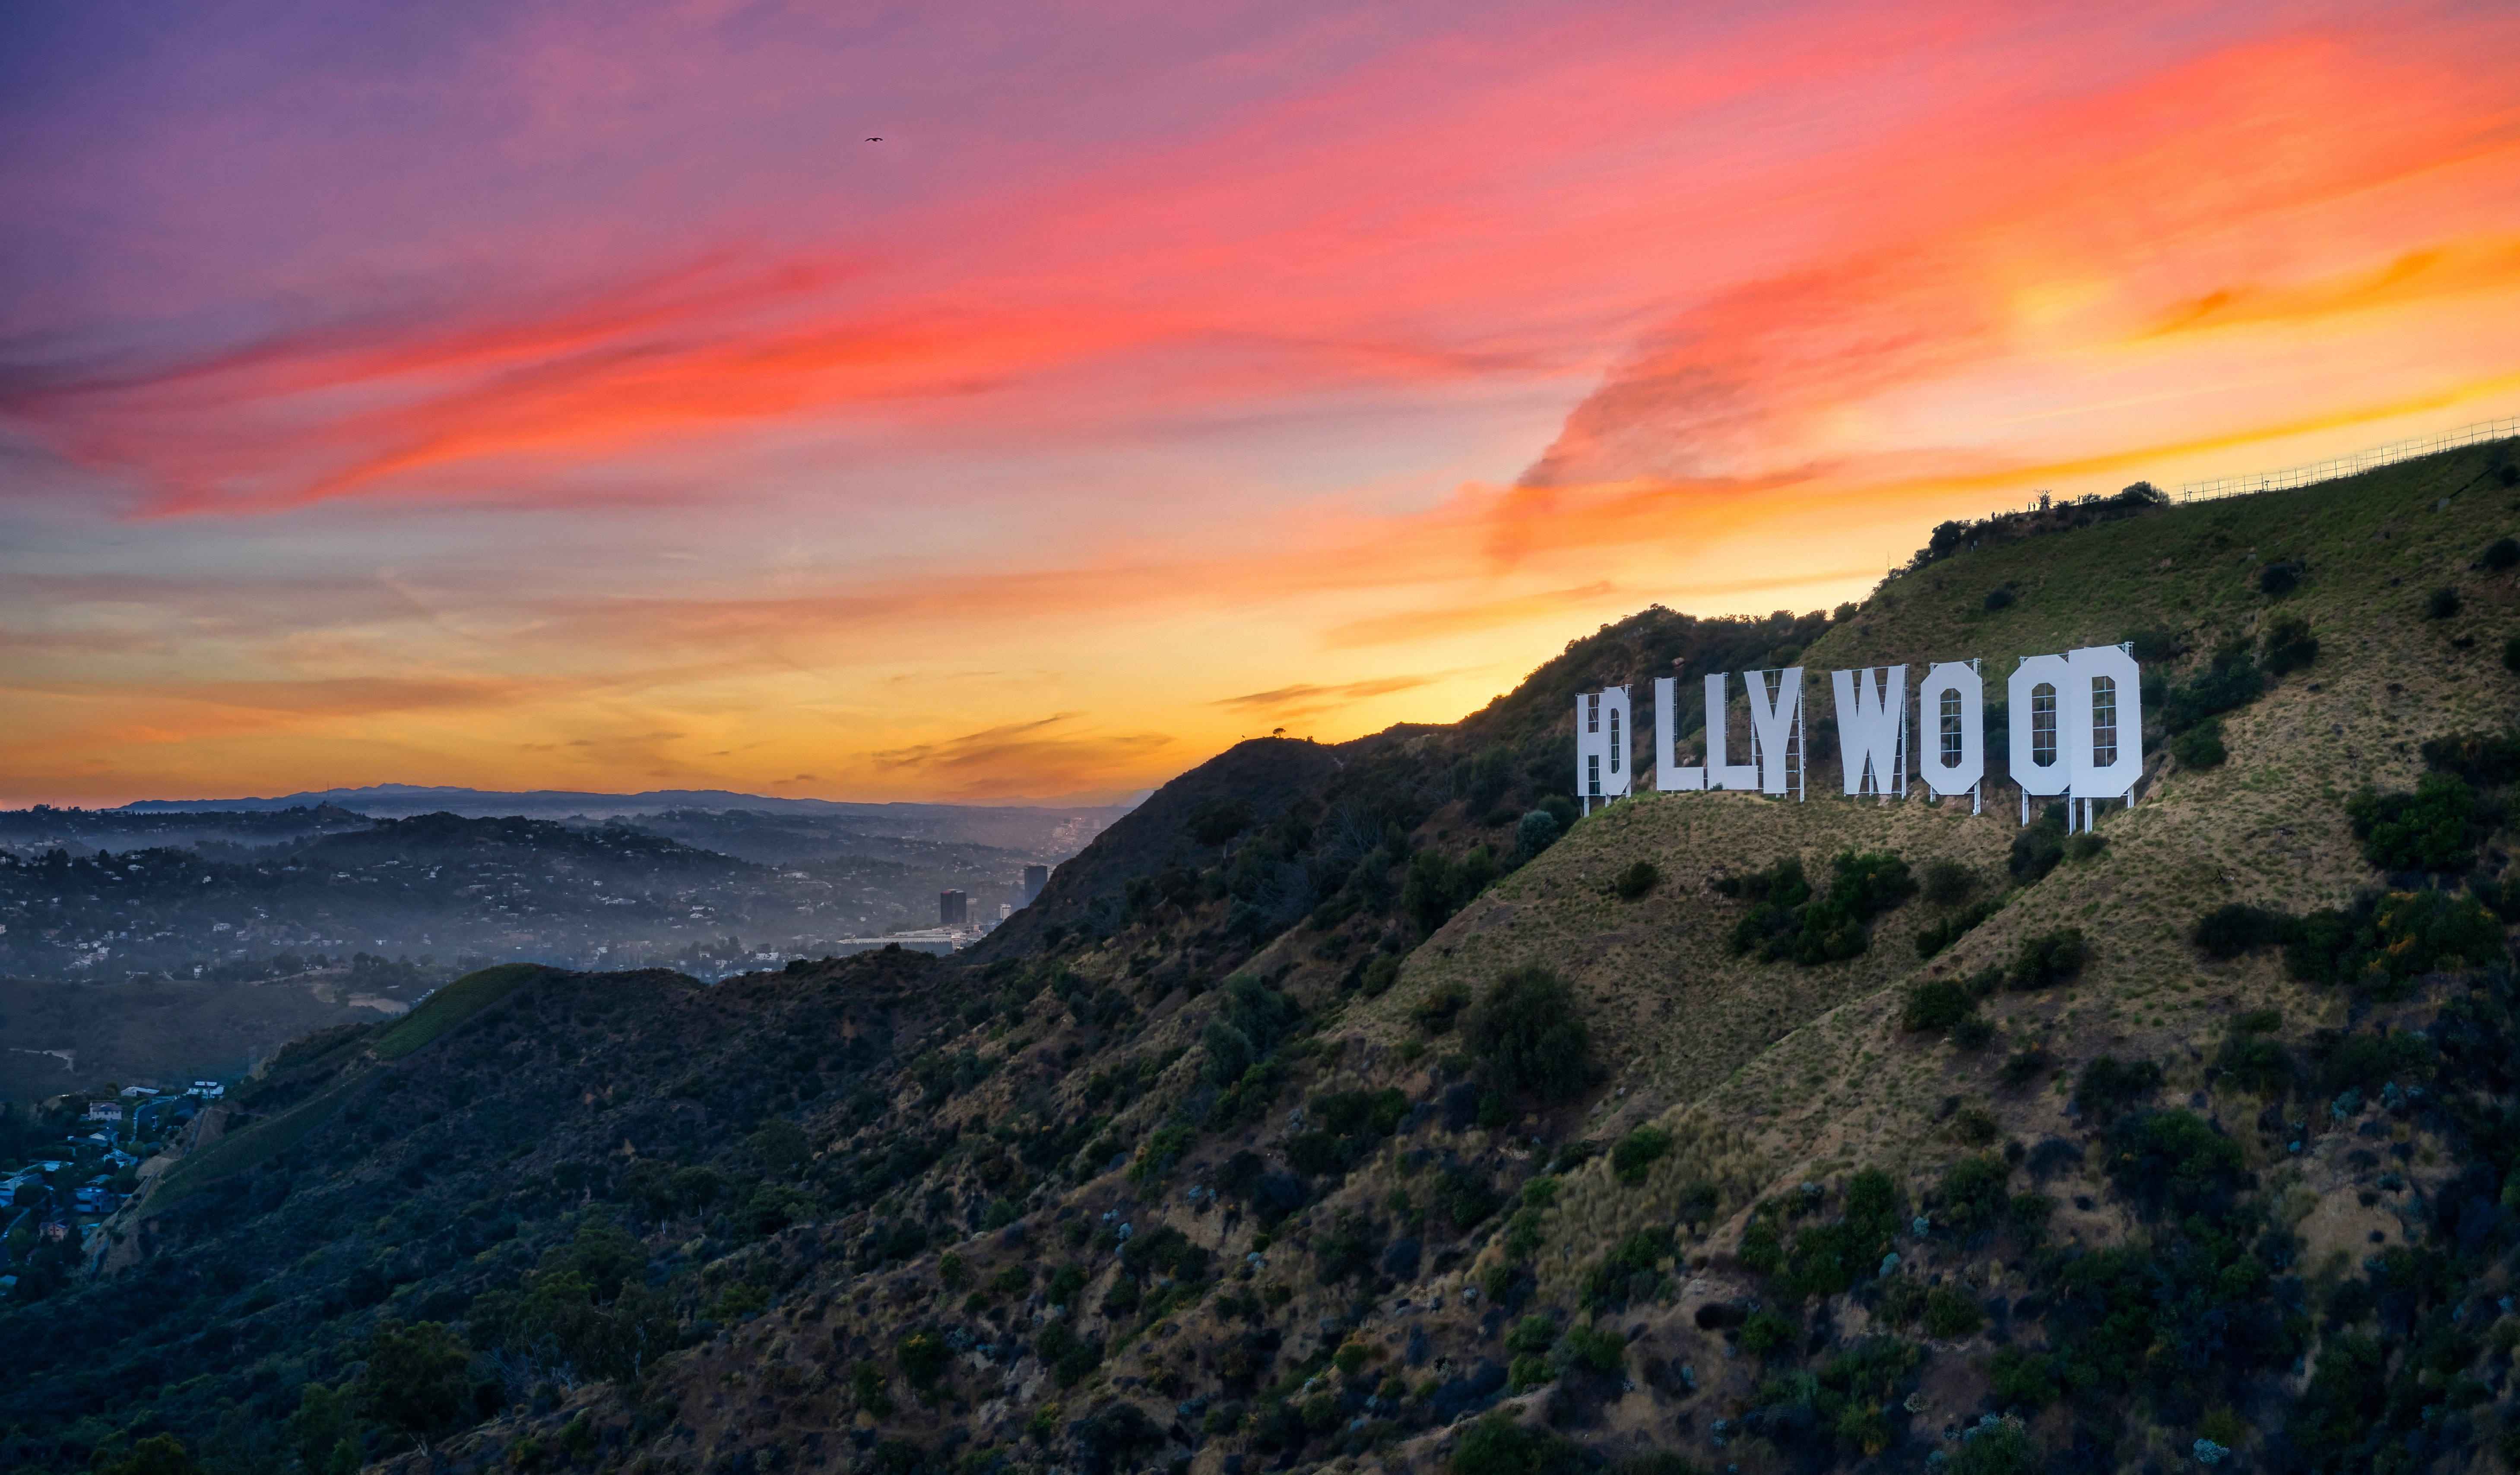 Side view of the Hollywood sign at sunset